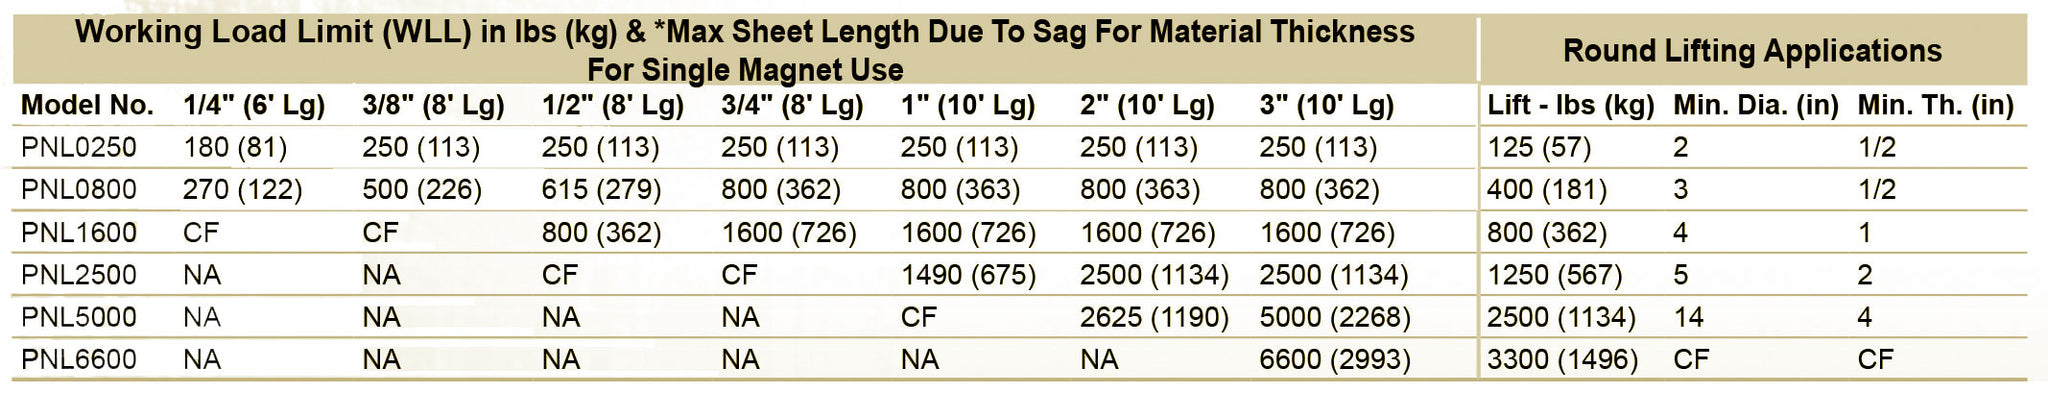 Lift Magnets Rare Earth Magnets | Magnets Lifting